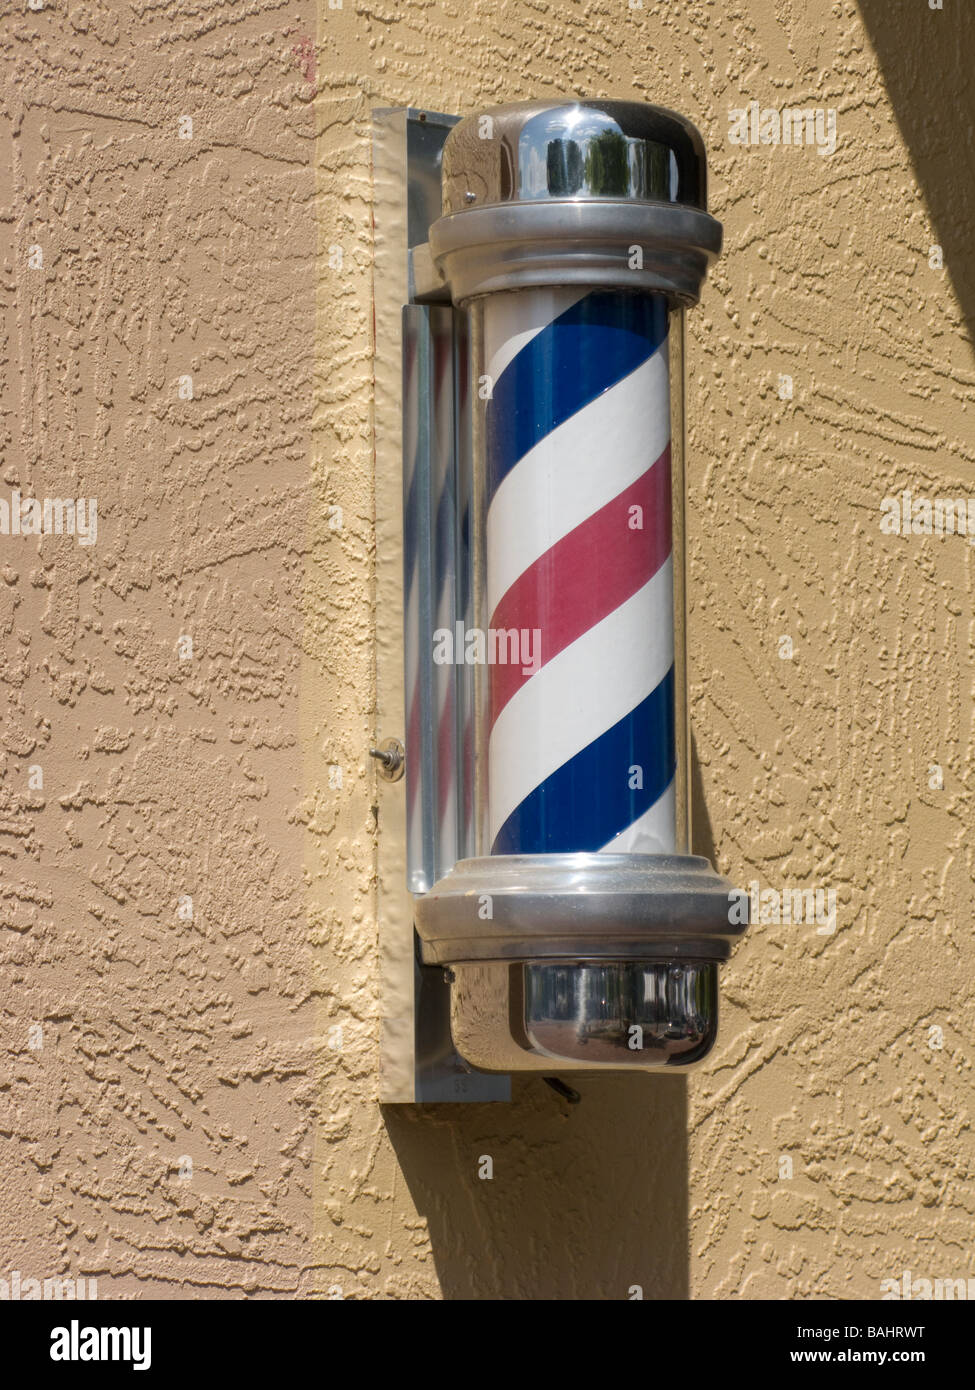 Barber Shop Pol Stockbild